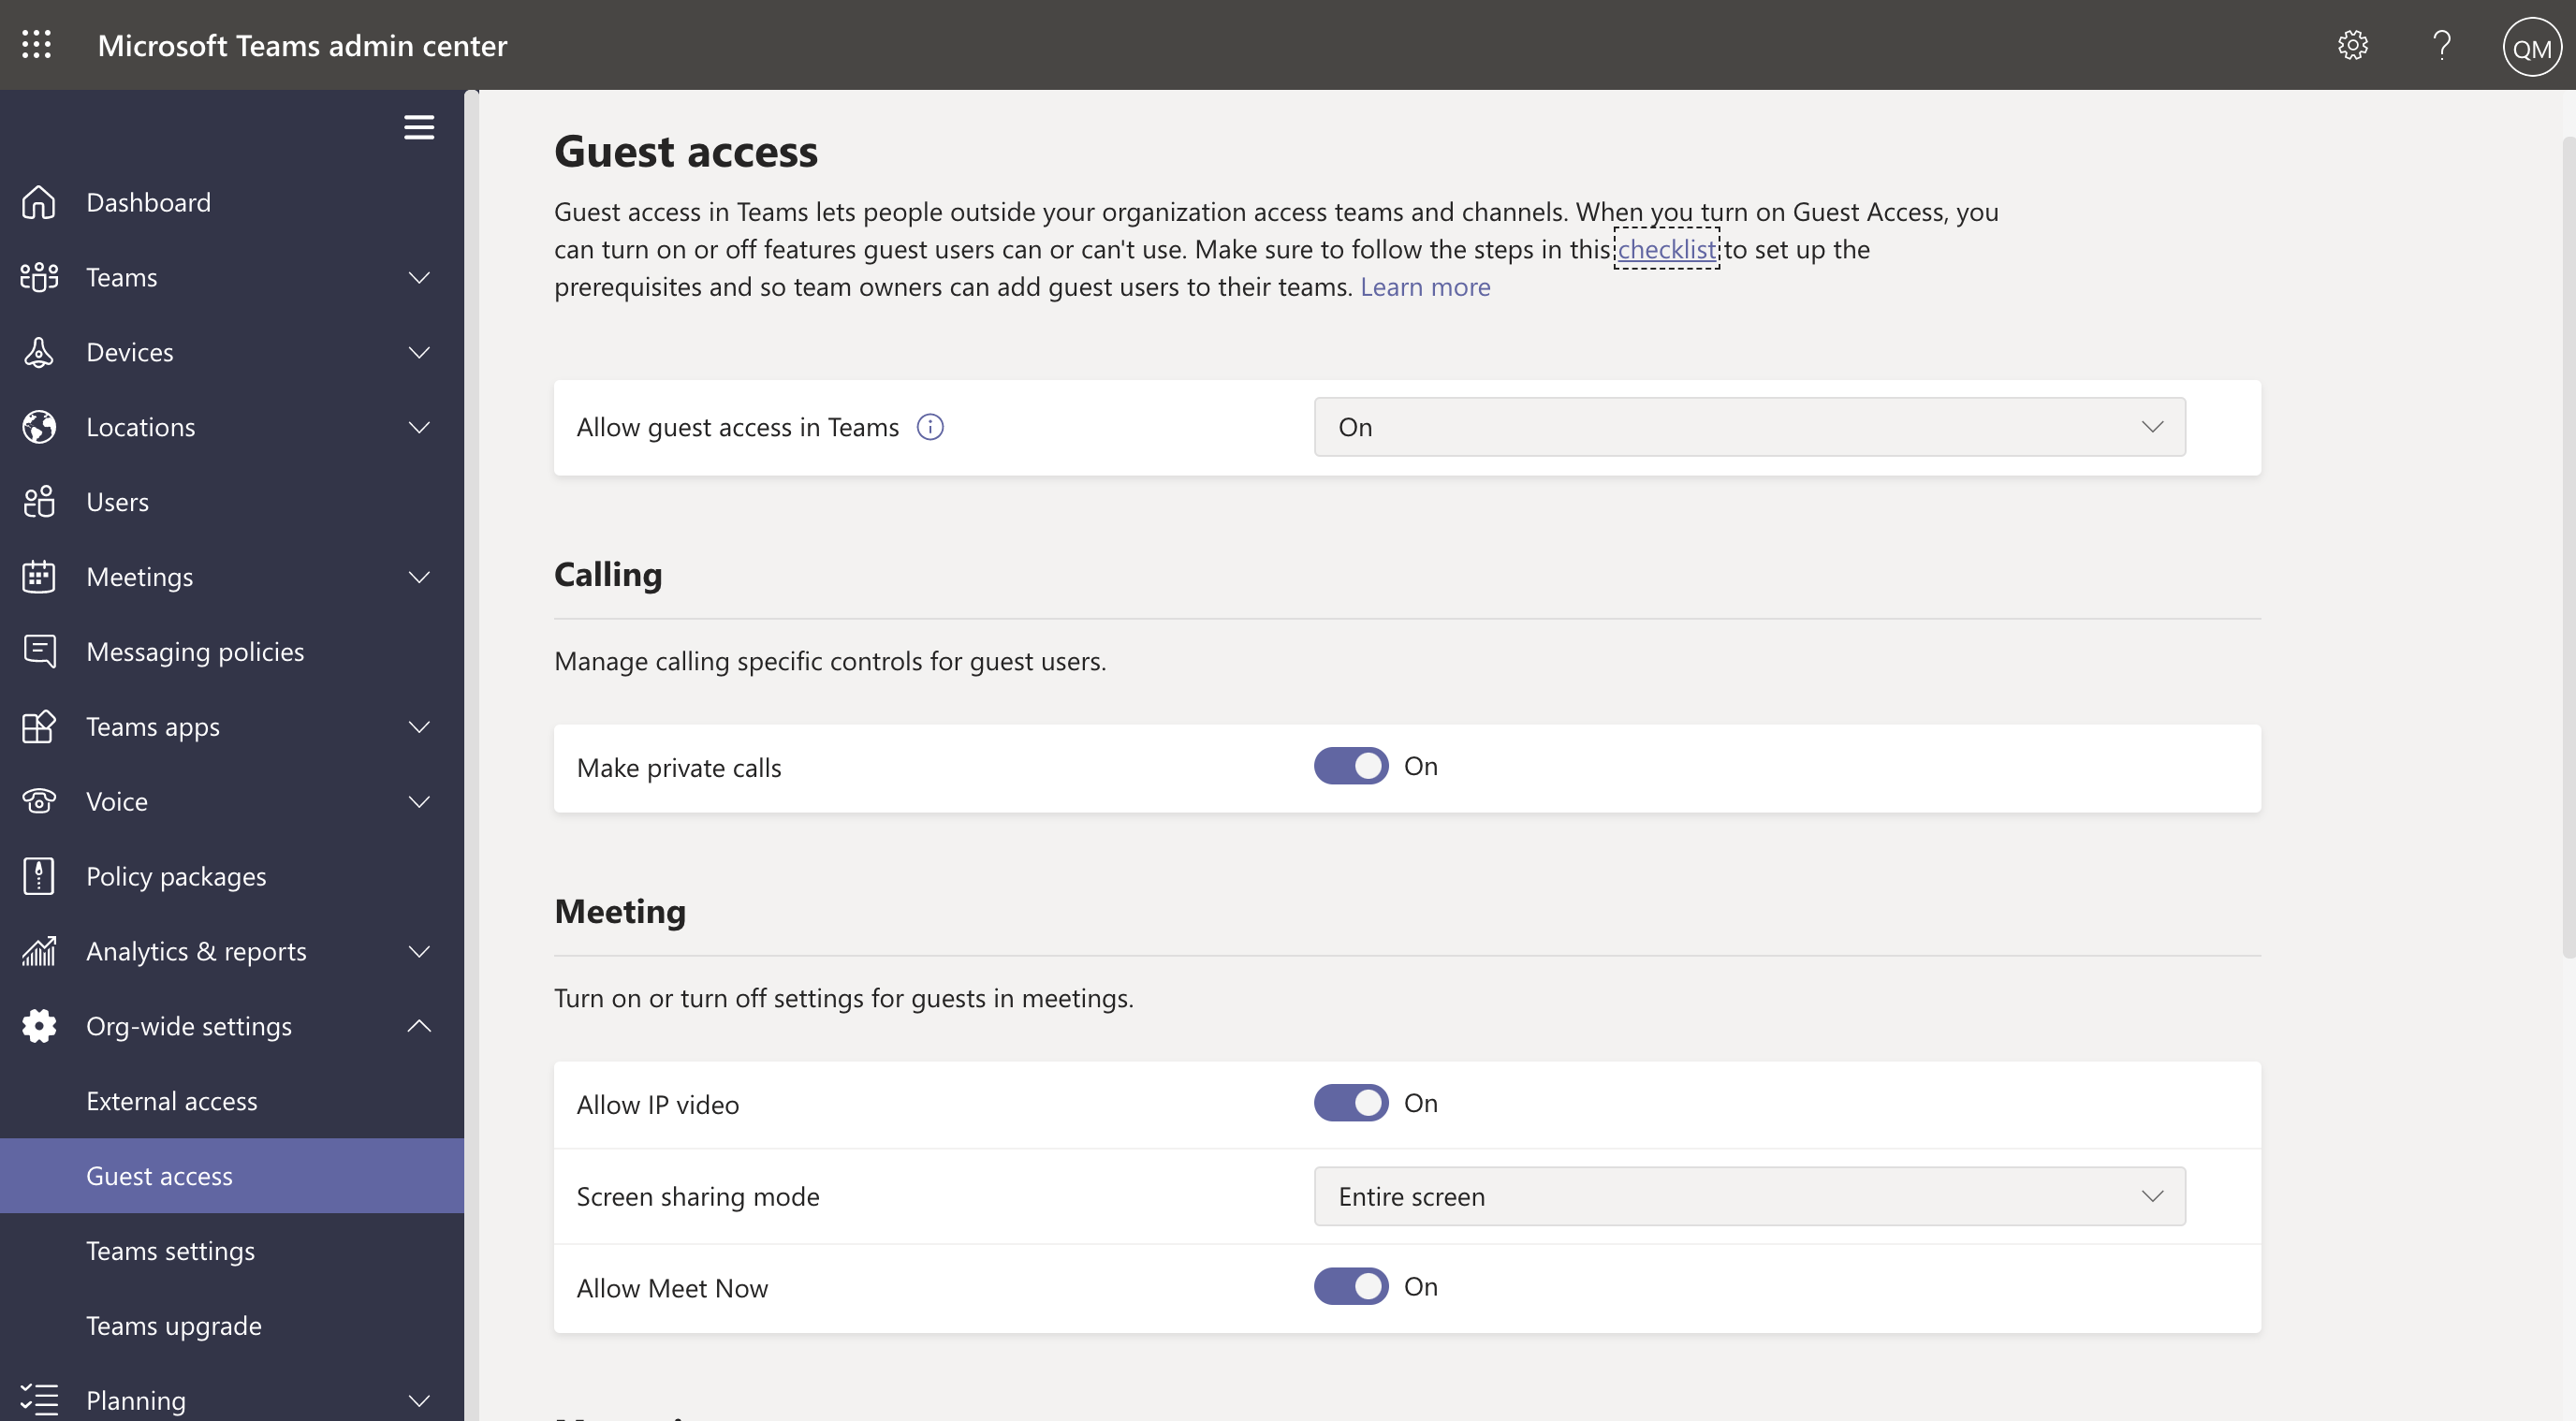 Screenshot showing guest access settings in the Teams admin center.